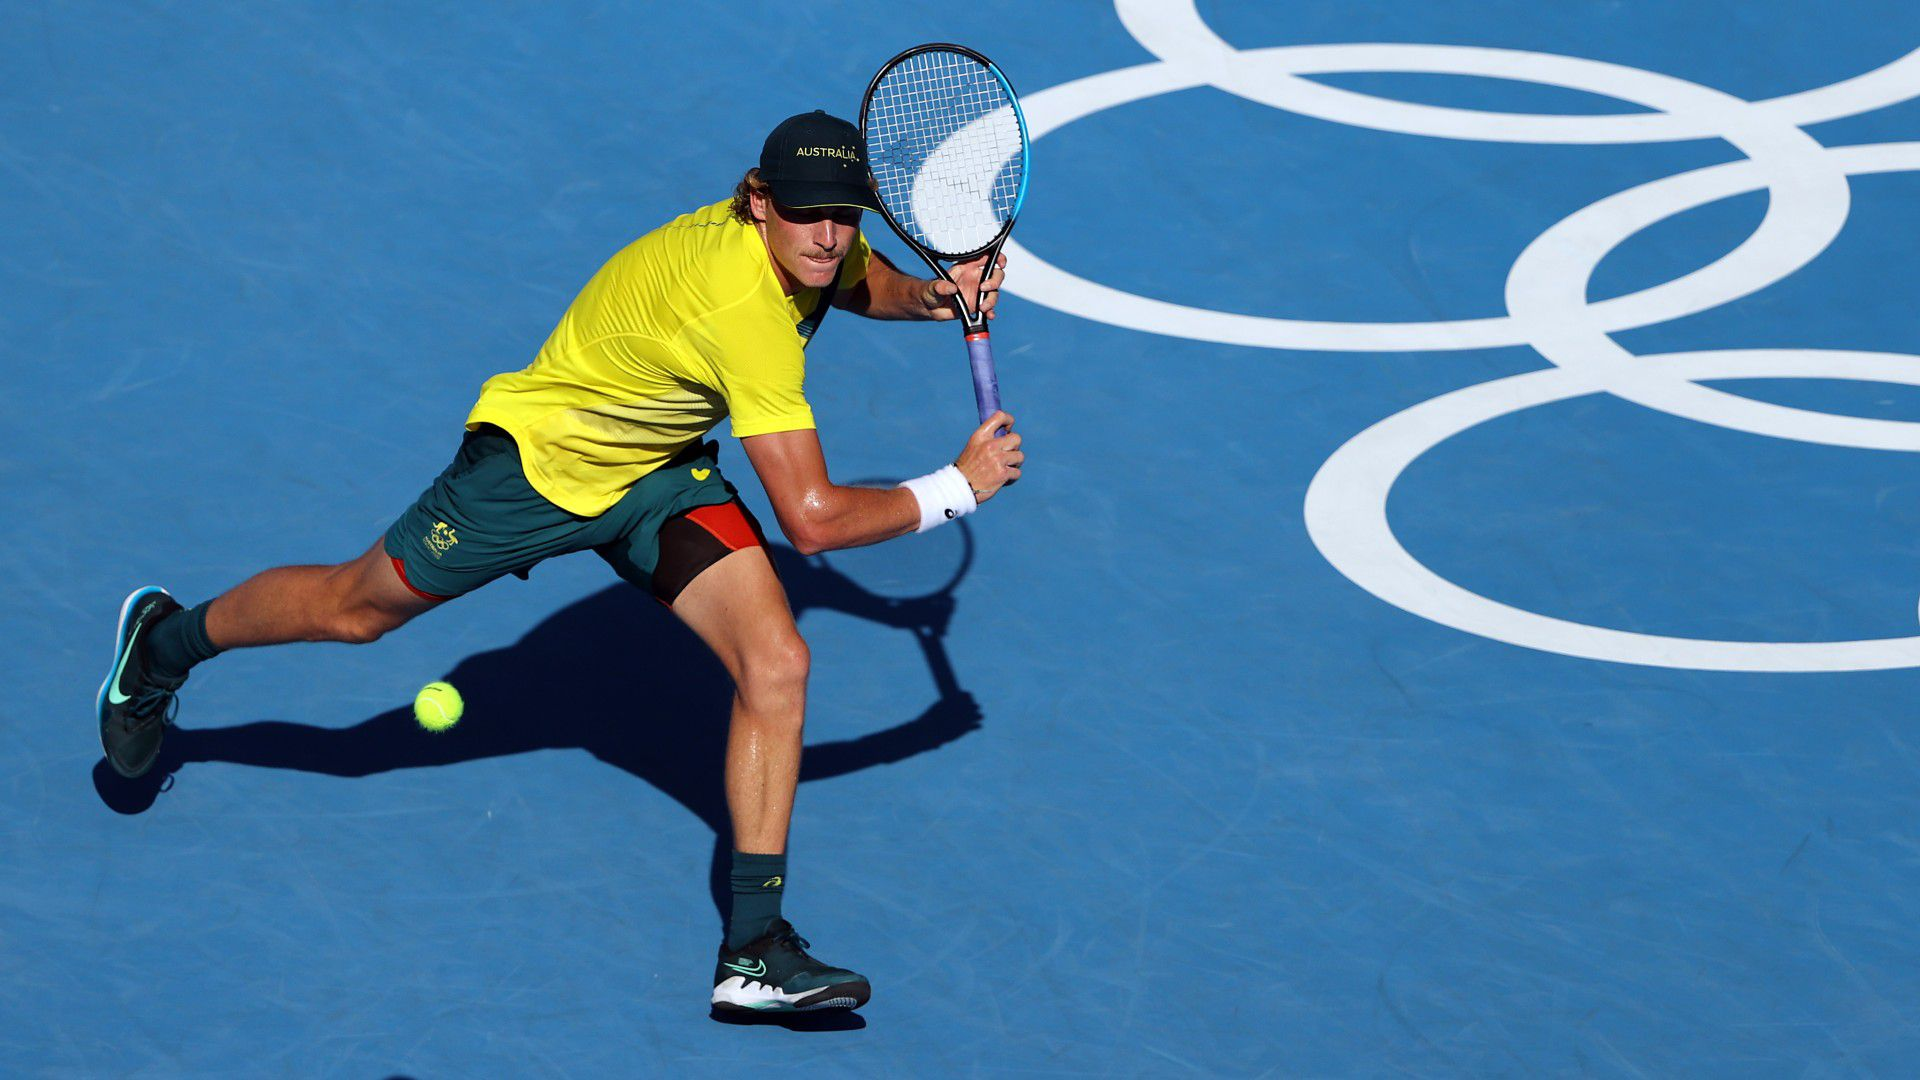 Max Purcell called up to singles tournament, springs huge upset win over Felix Auger-Aliassime